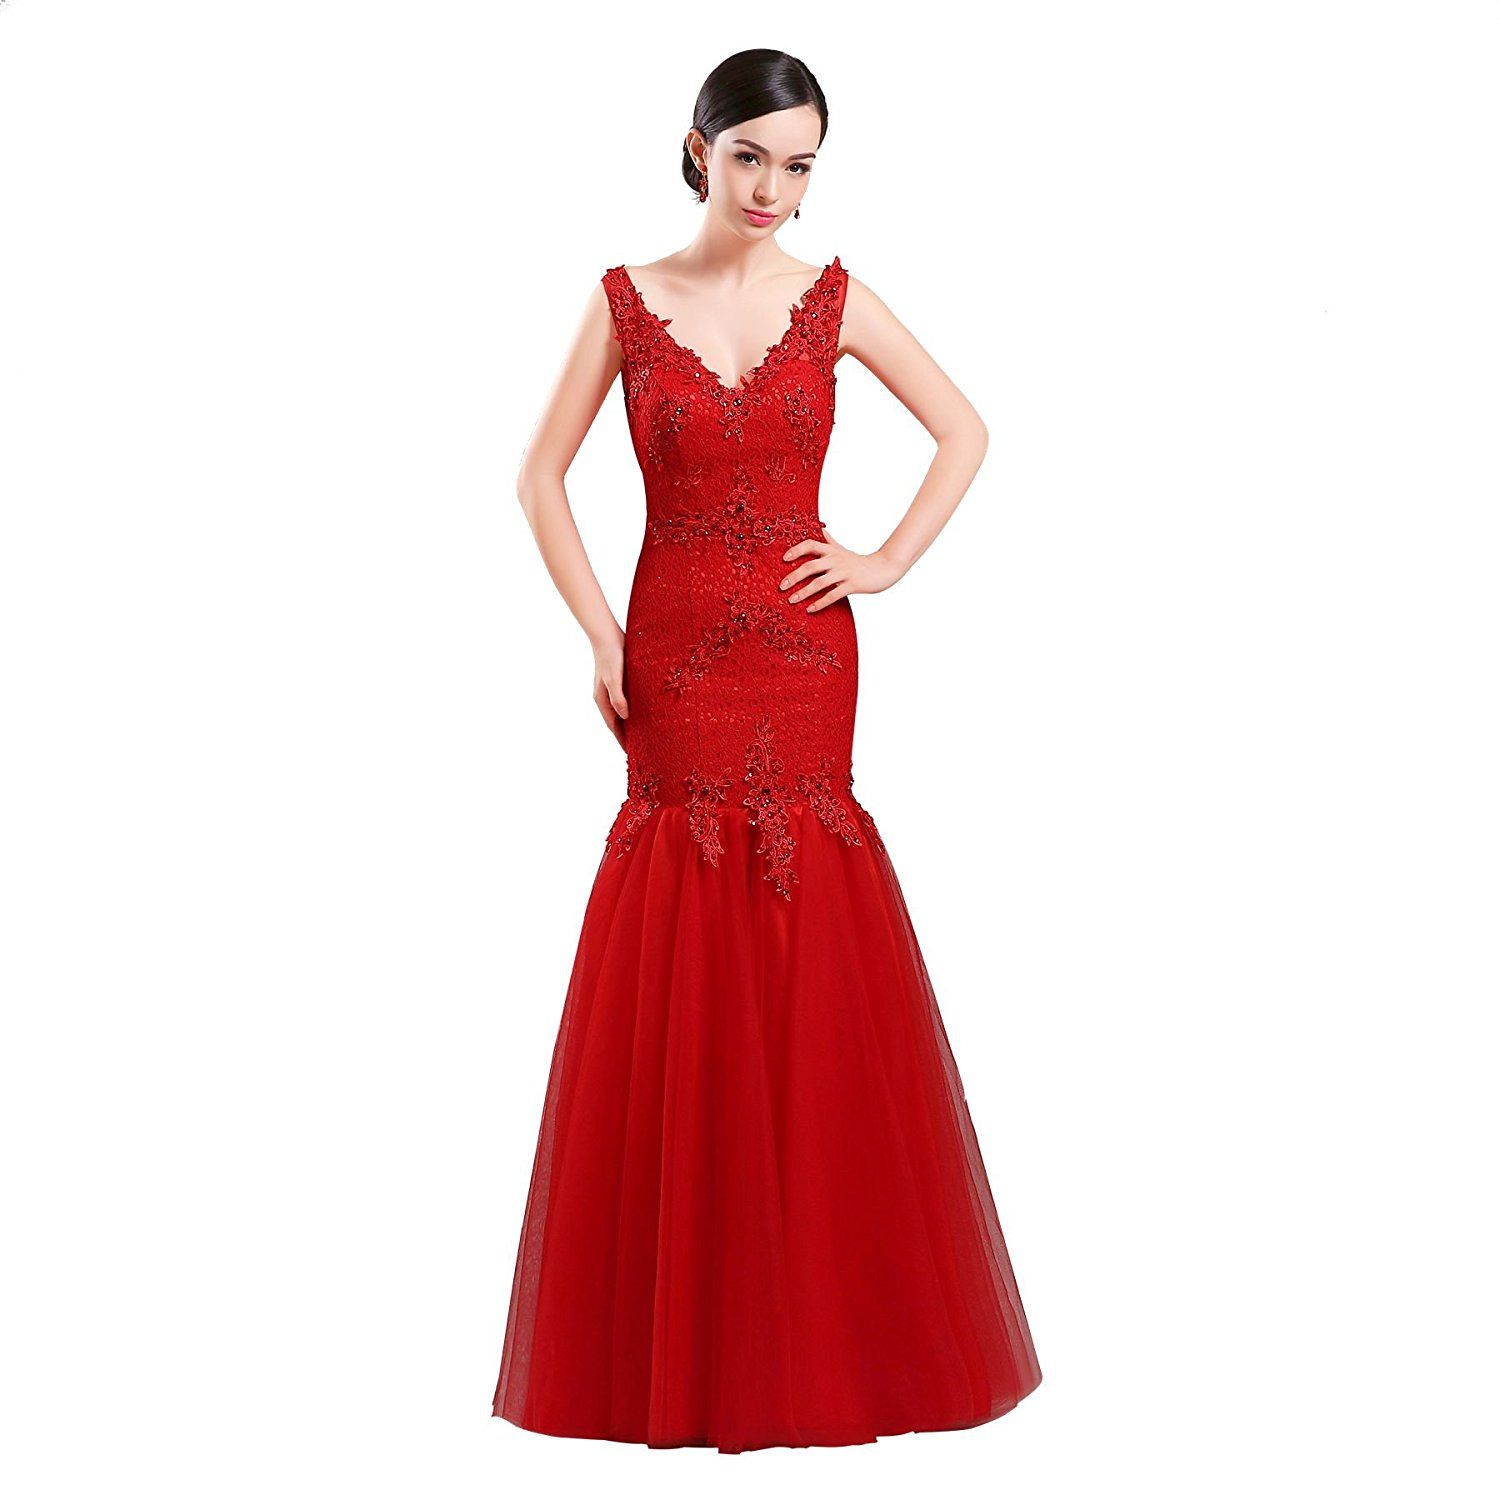 Lafee bridal womenus beading vneck red lace applique wedding party